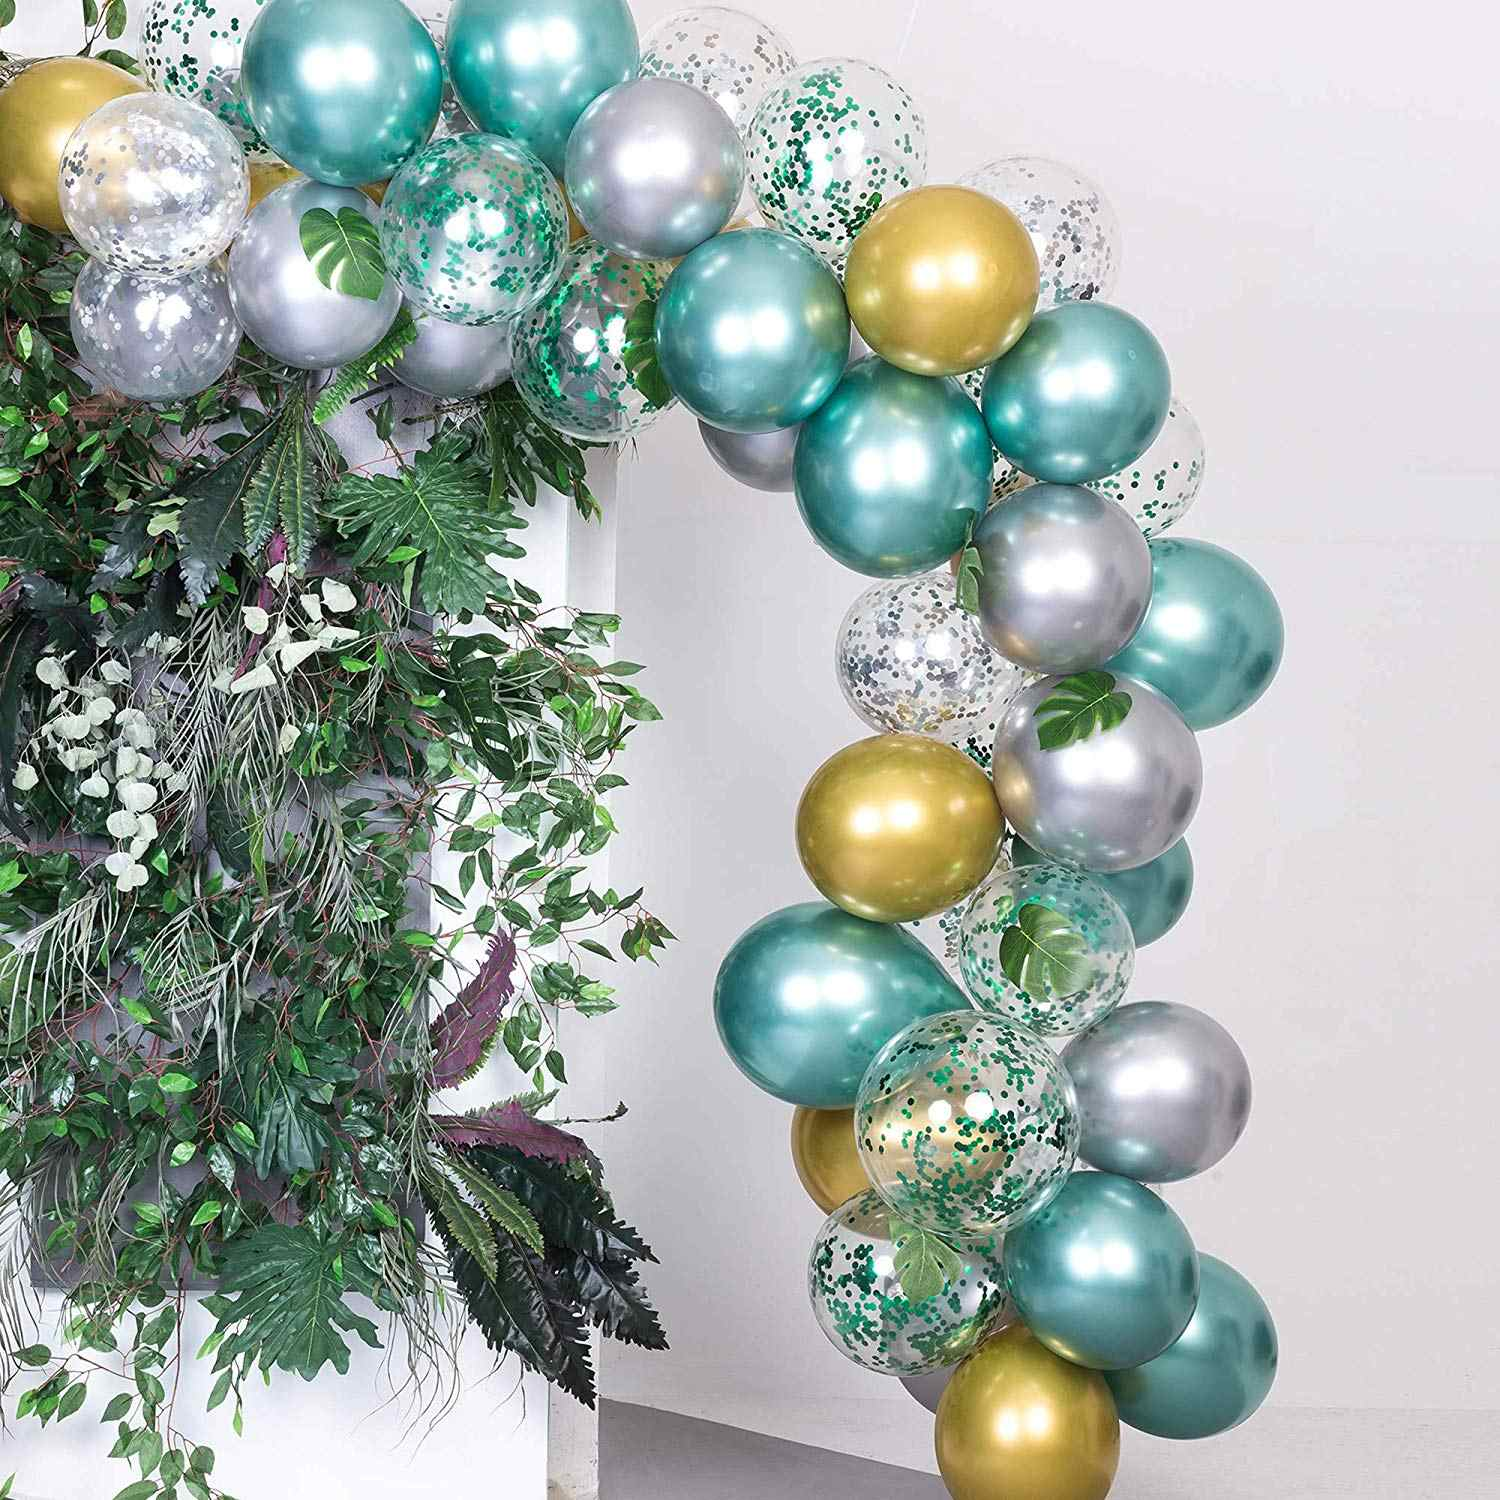 Love Balloon Banner Champagne Celebration Party Chirstmas Balloon Kids Toy Gifts